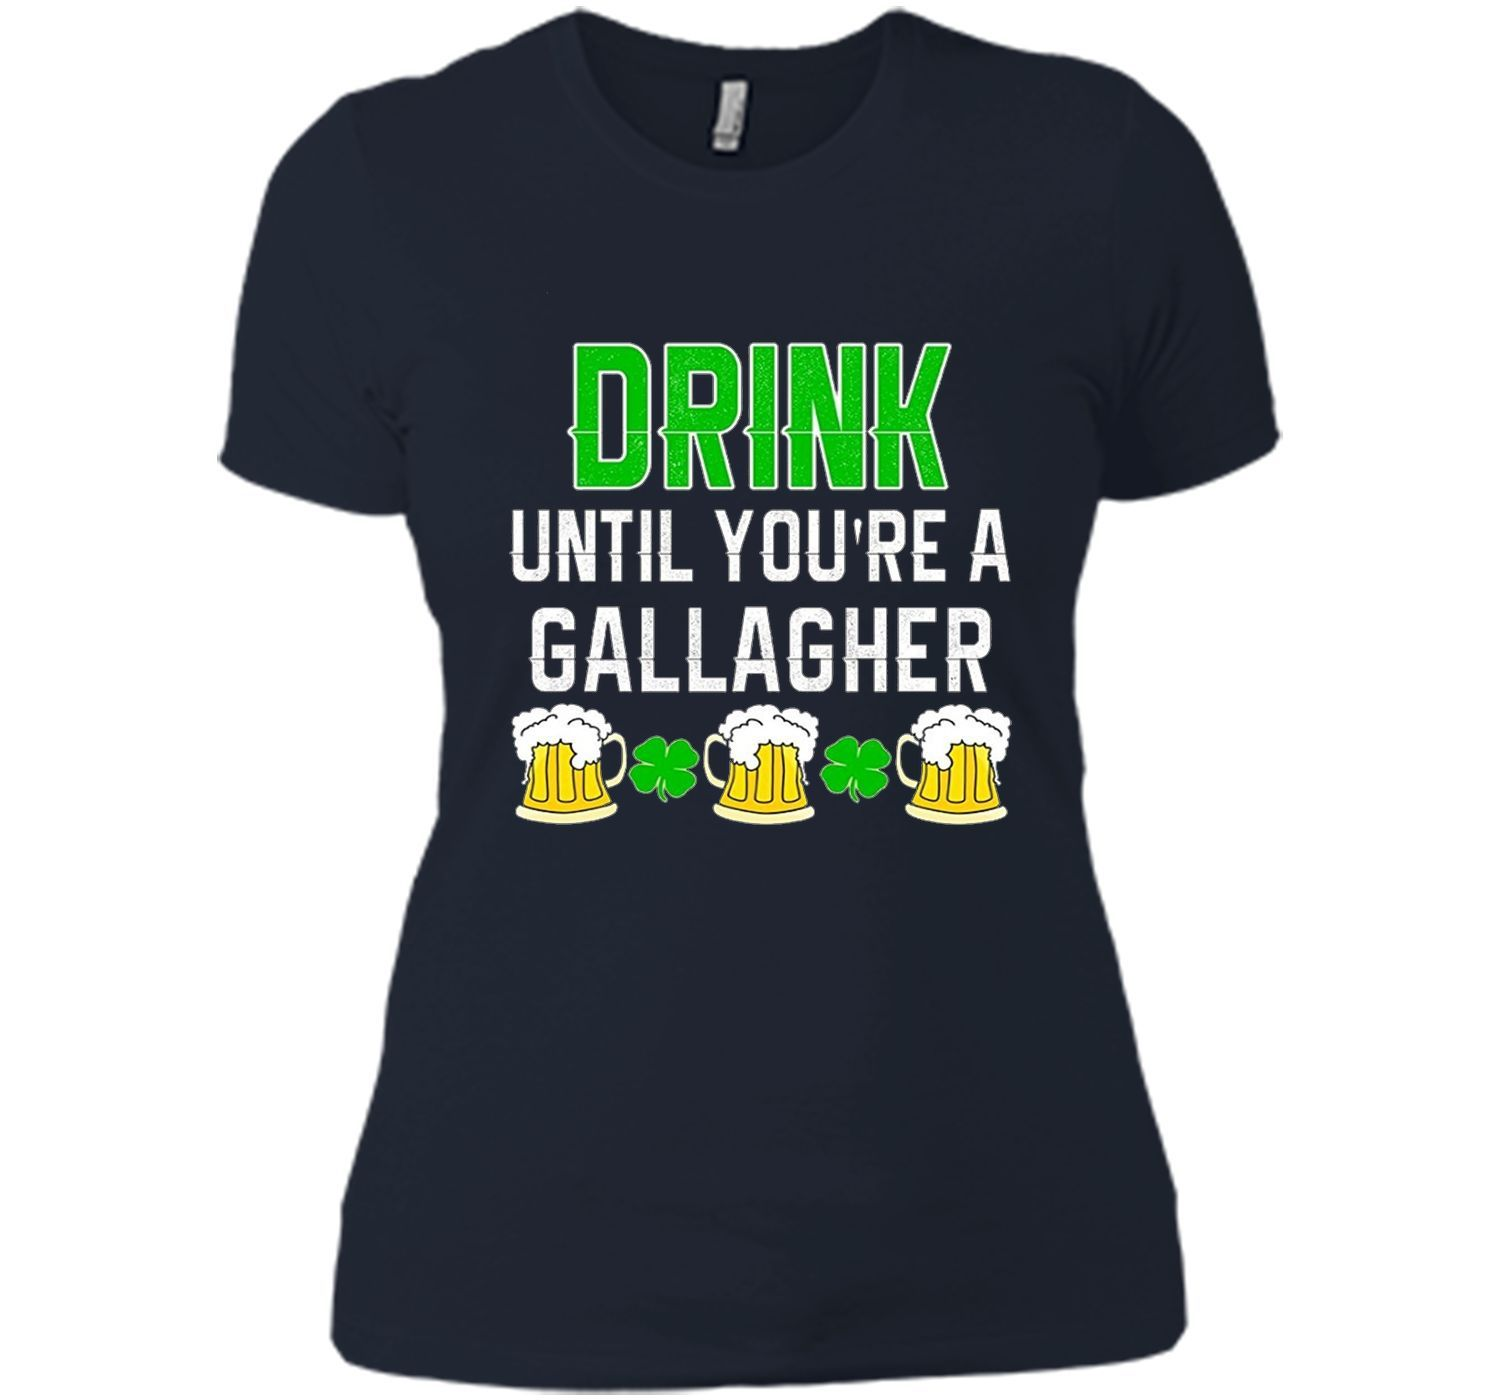 Drink Until You're a Gallagher T-Shirt, NEW